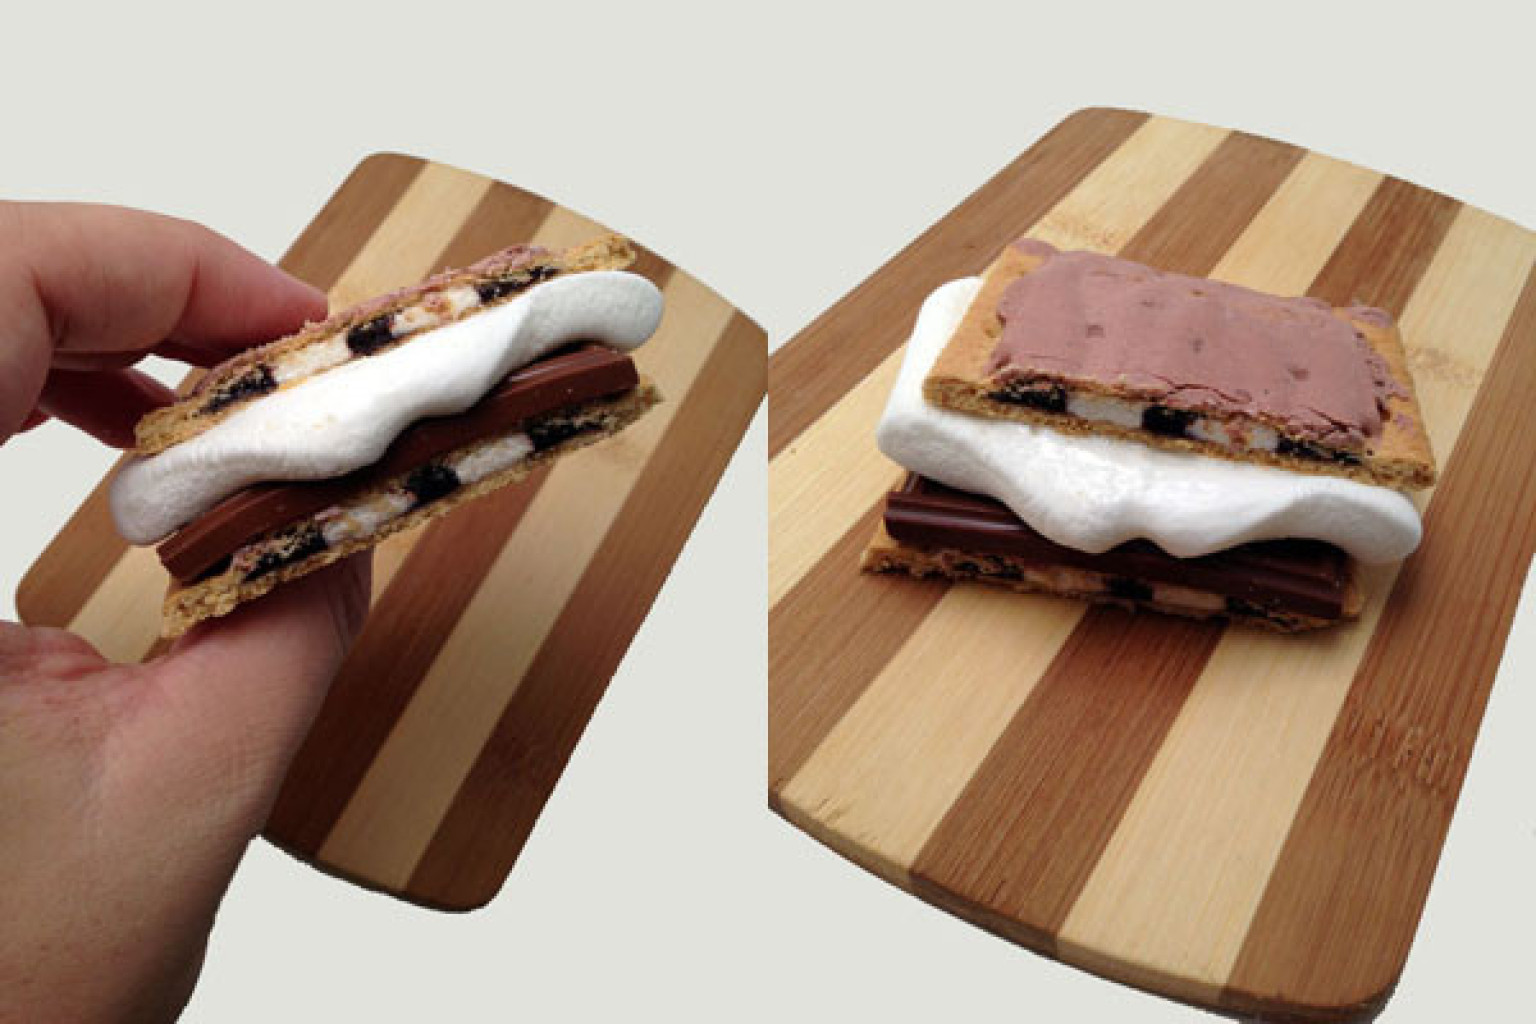 mores Pop-Tarts S'mores | The Huffington Post